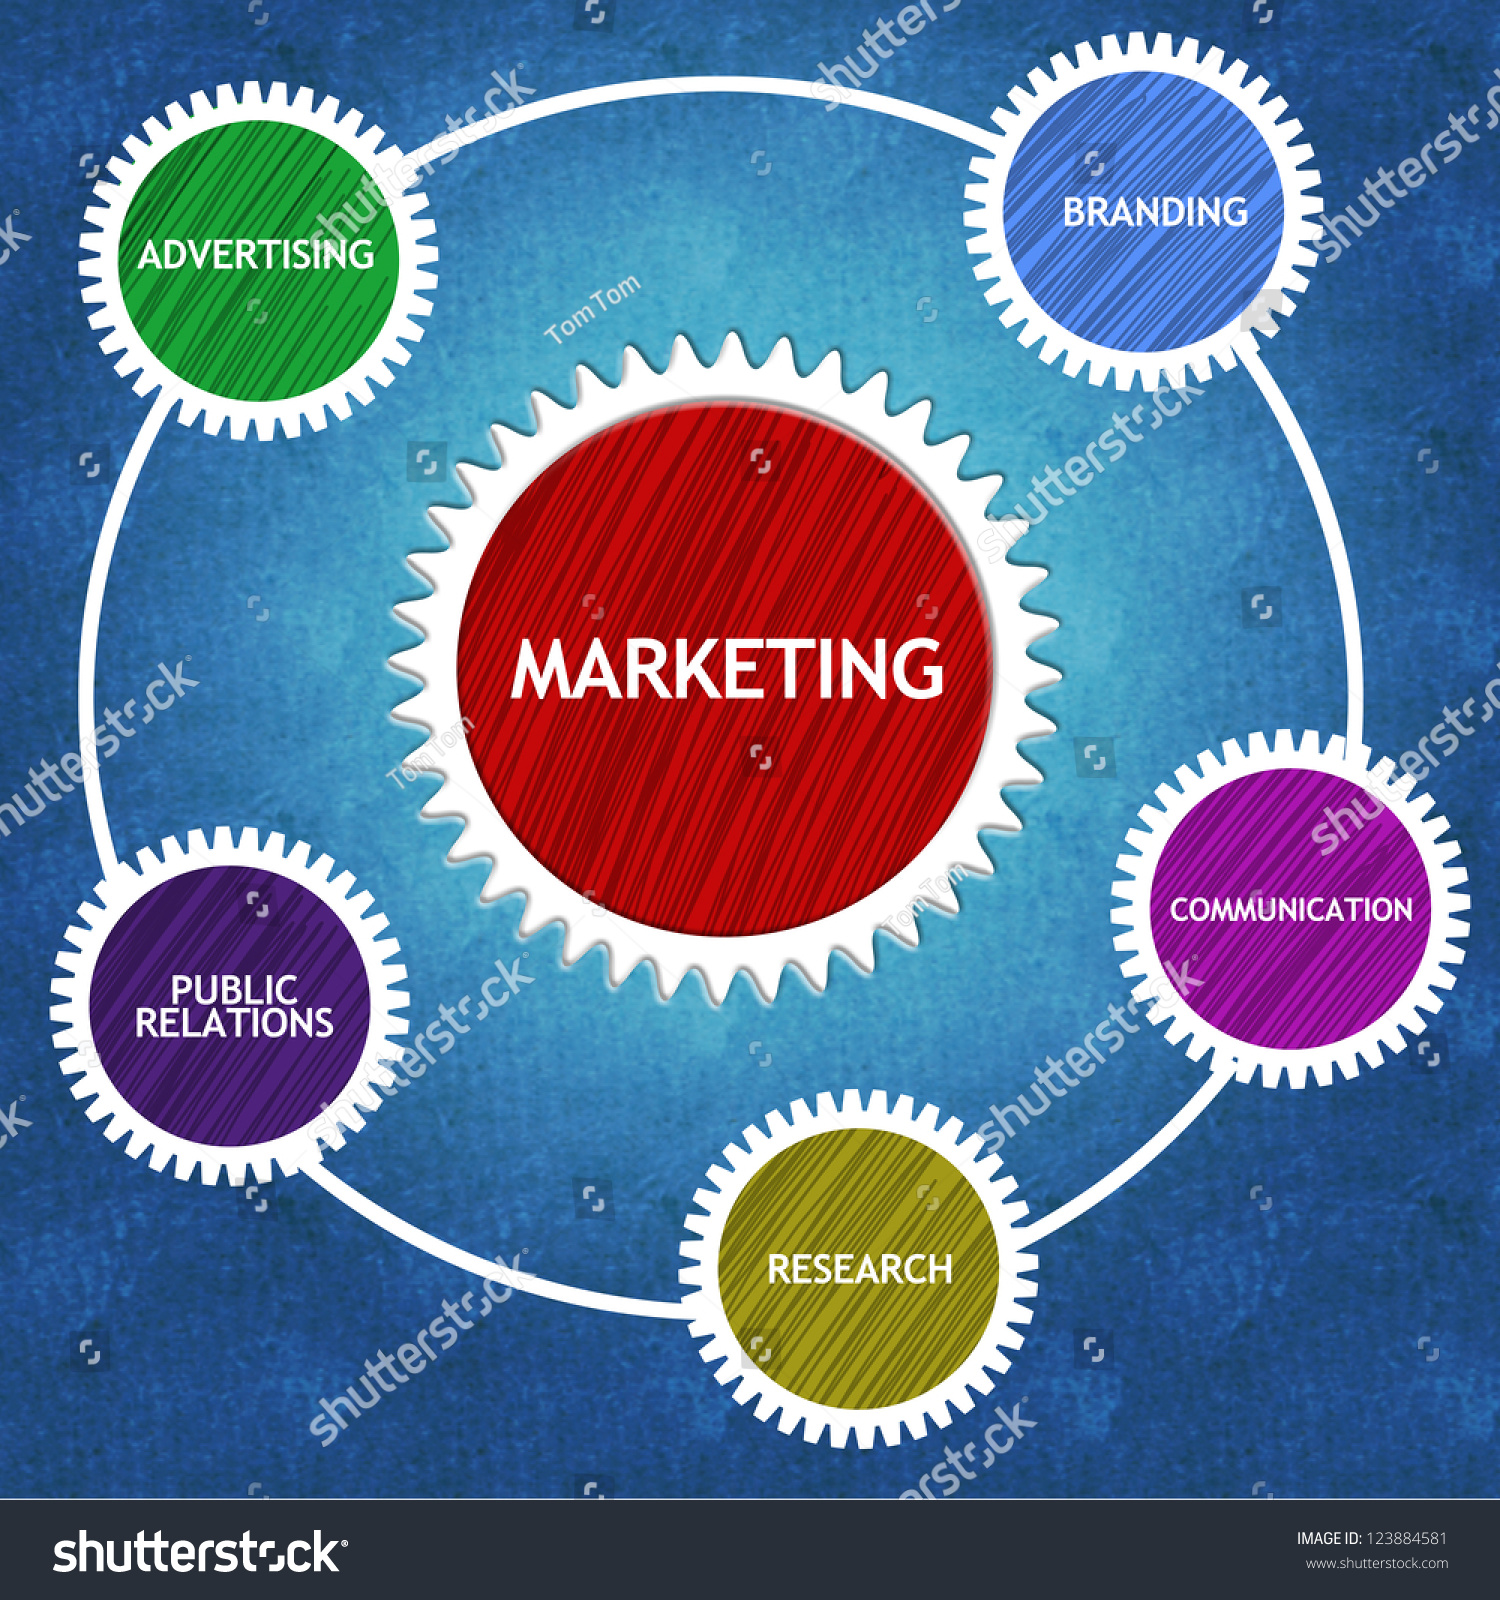 importance of marketing concept and practice Importance of marketing scope of marketing marketing in practice scope price value is a central marketing concept satisfaction reflects a.